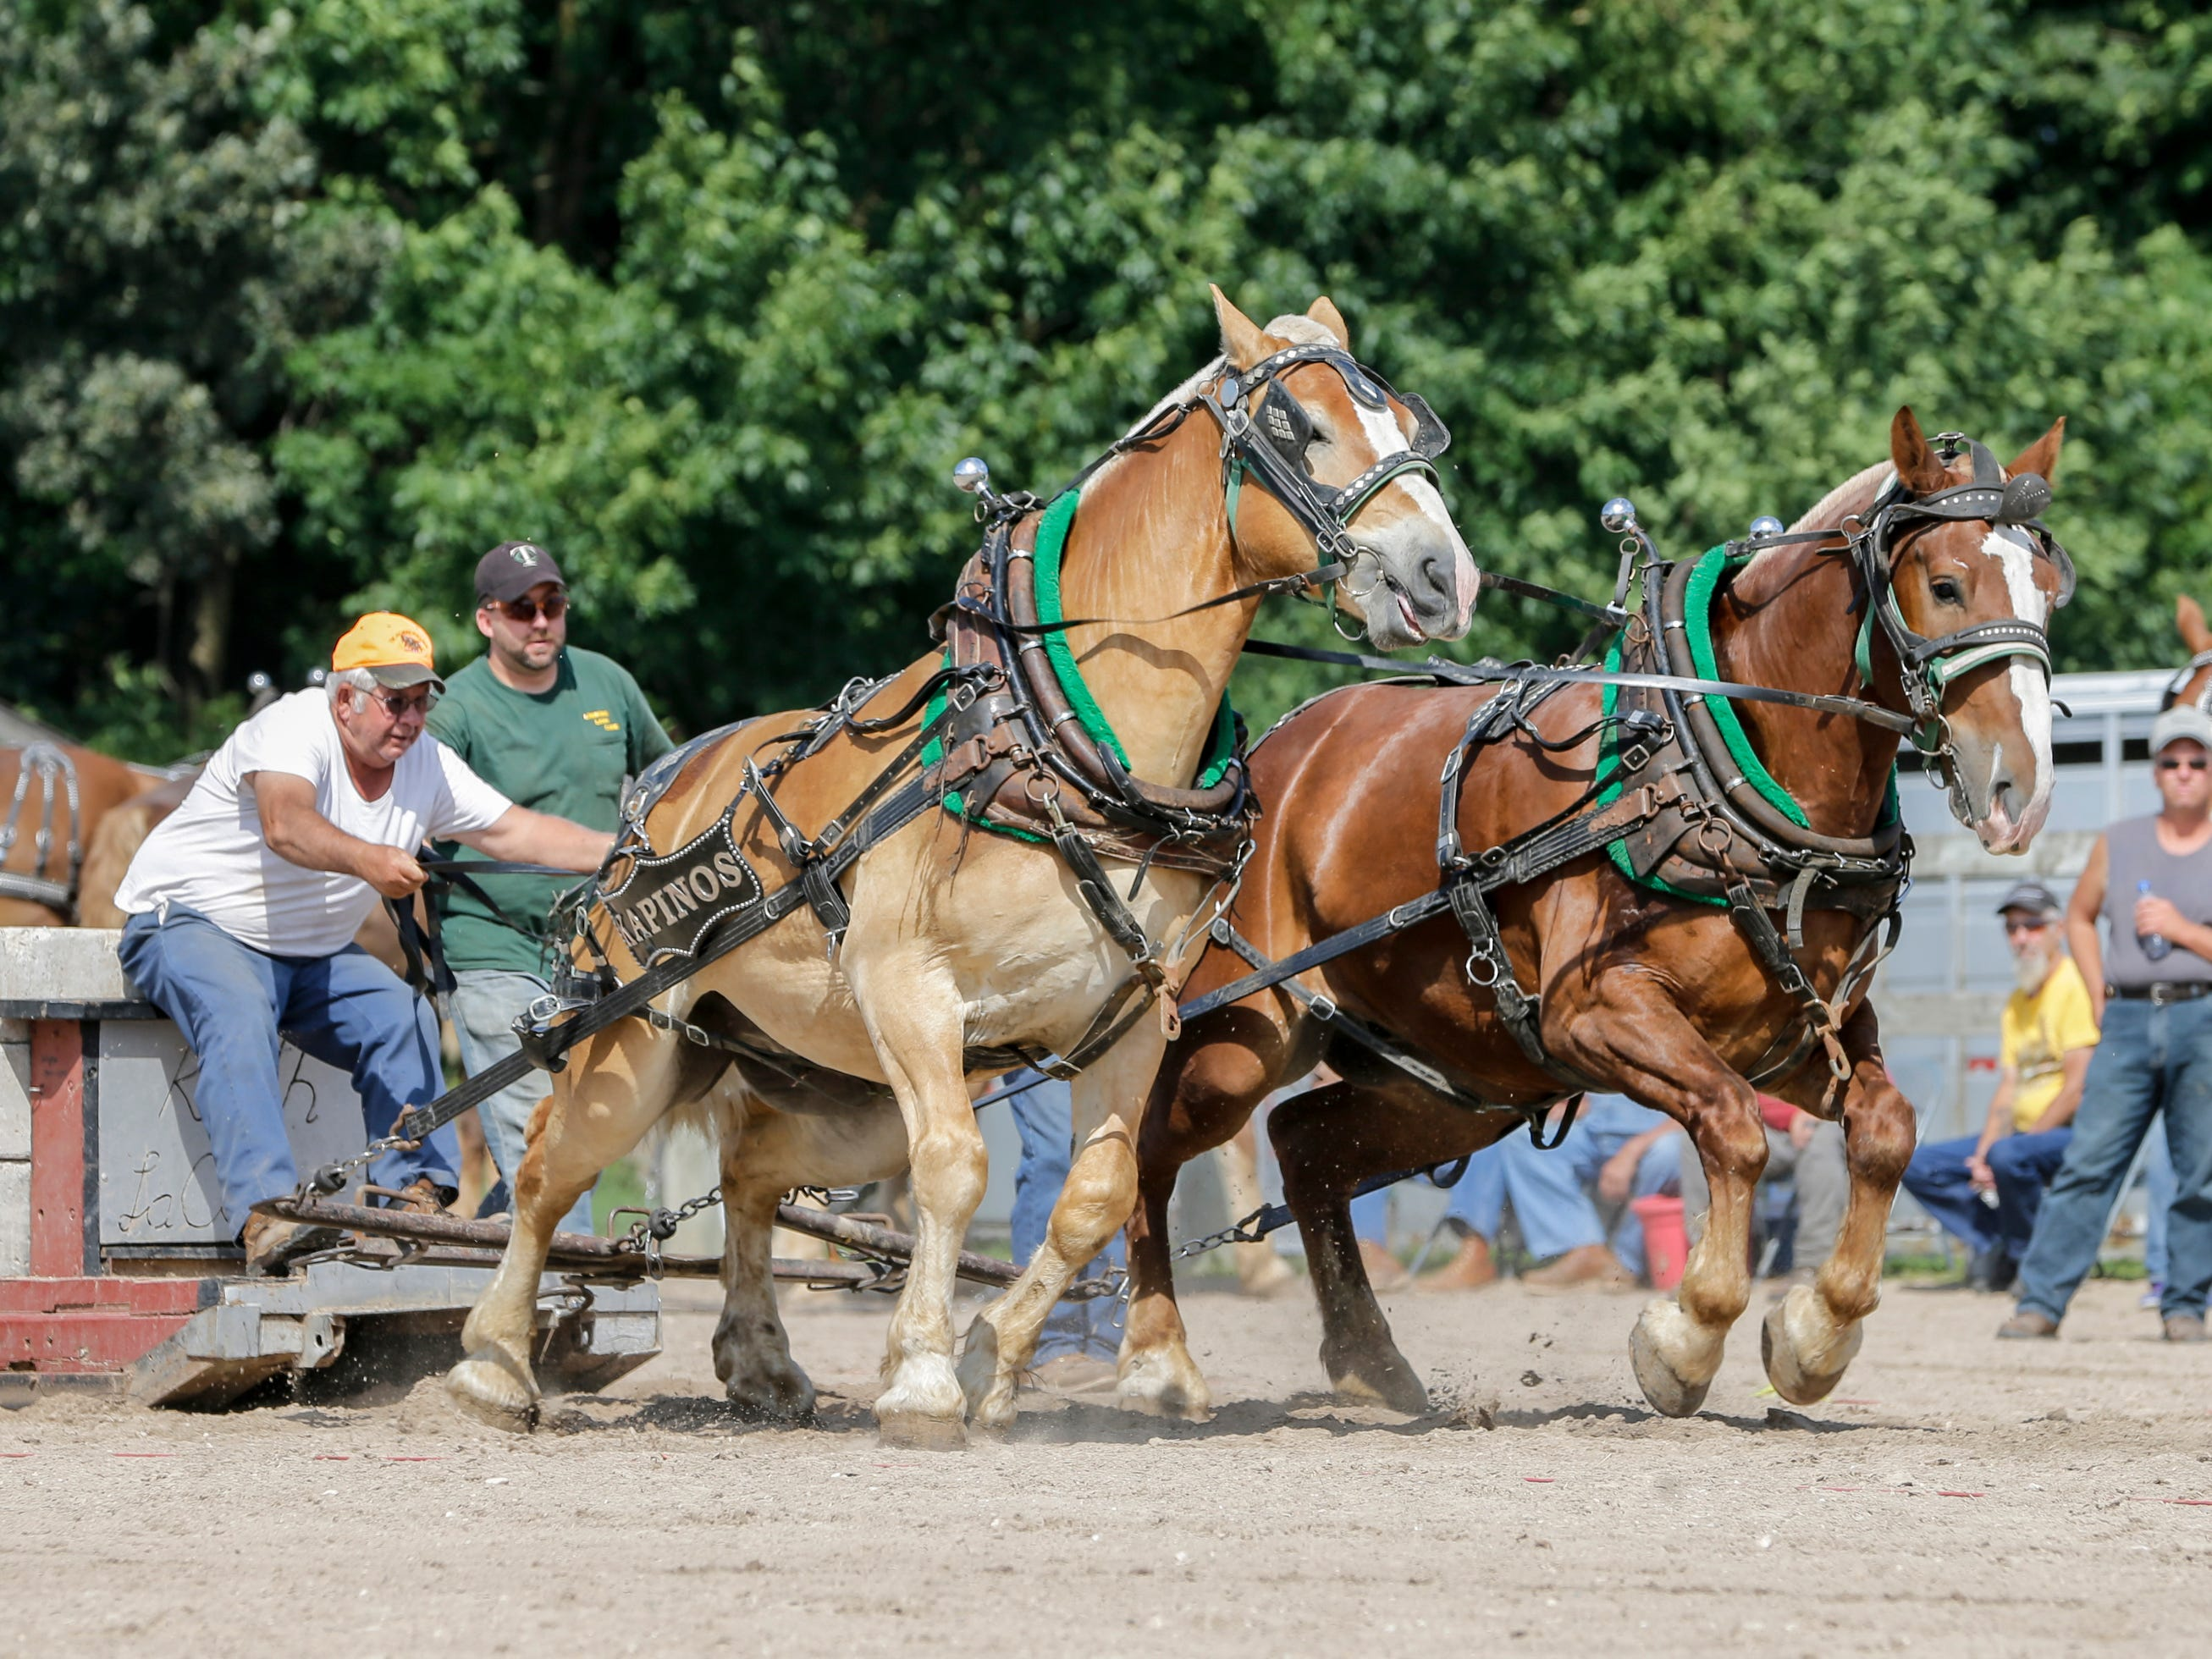 Tom Kapinos drives his team of Belgian draft horses carrying 6,300 pounds during the horse pull at the Manitowoc County Fair Thursday, August 23, 2018, in Manitowoc, Wis. Josh Clark/USA TODAY NETWORK-Wisconsin